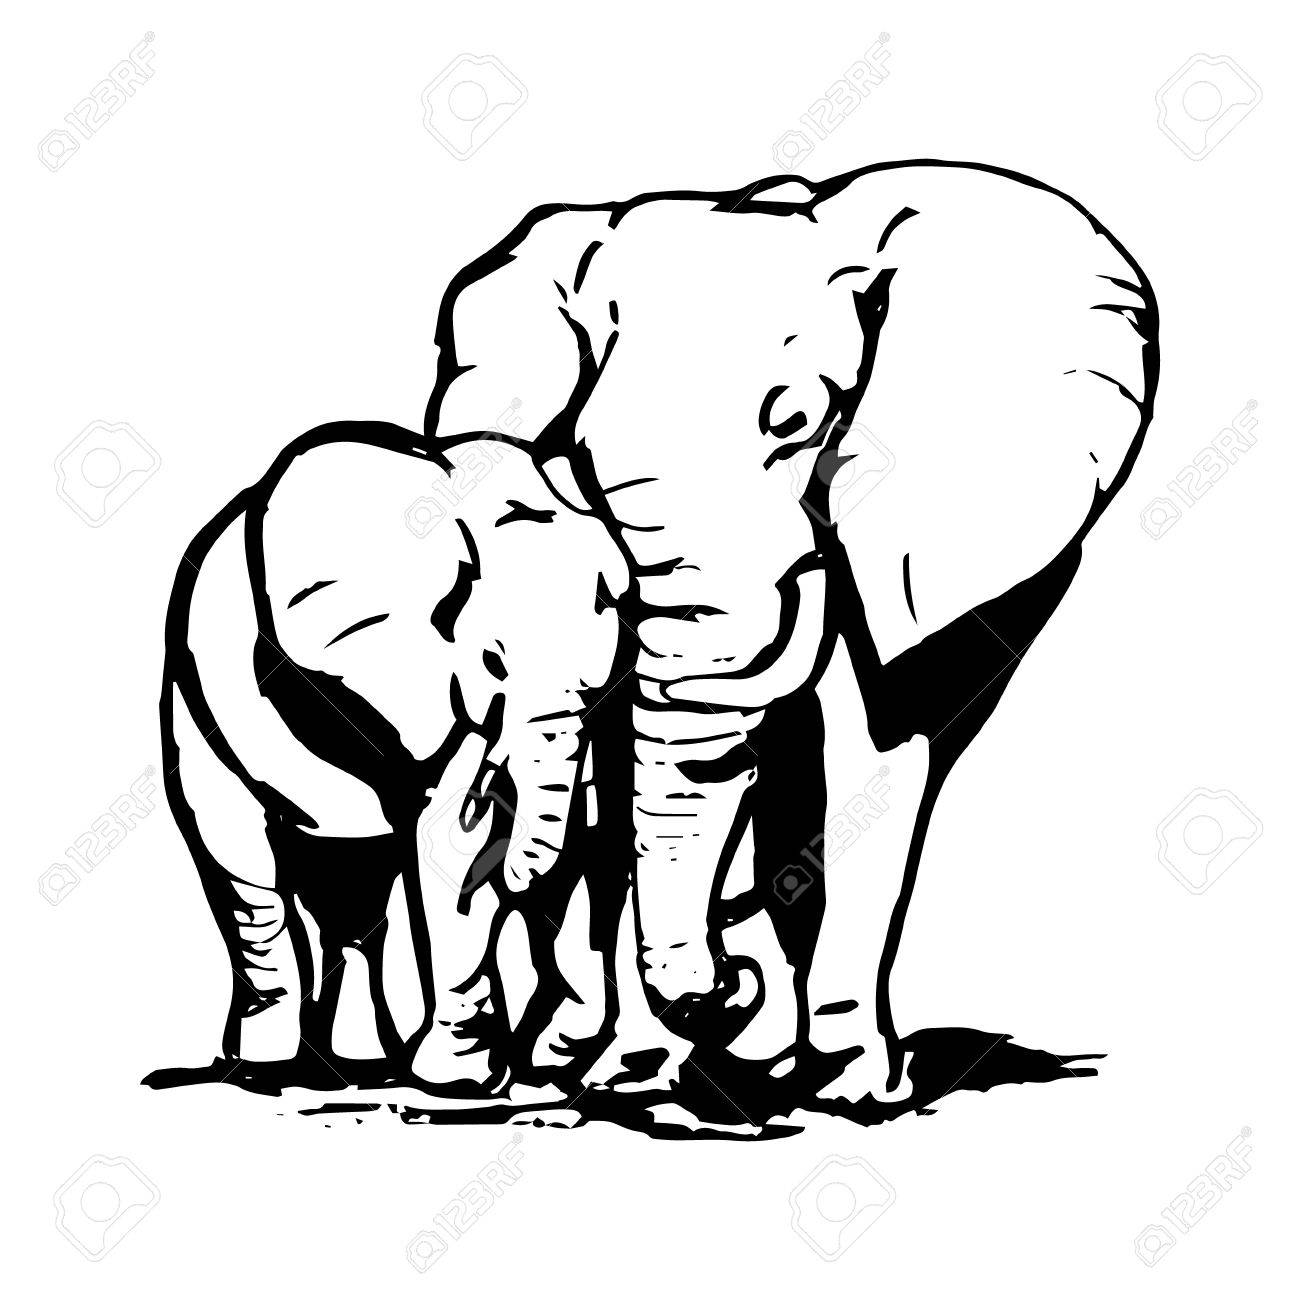 1300x1300 A Graphic Image Of Two Elephants. The Mother Elephant Hugging